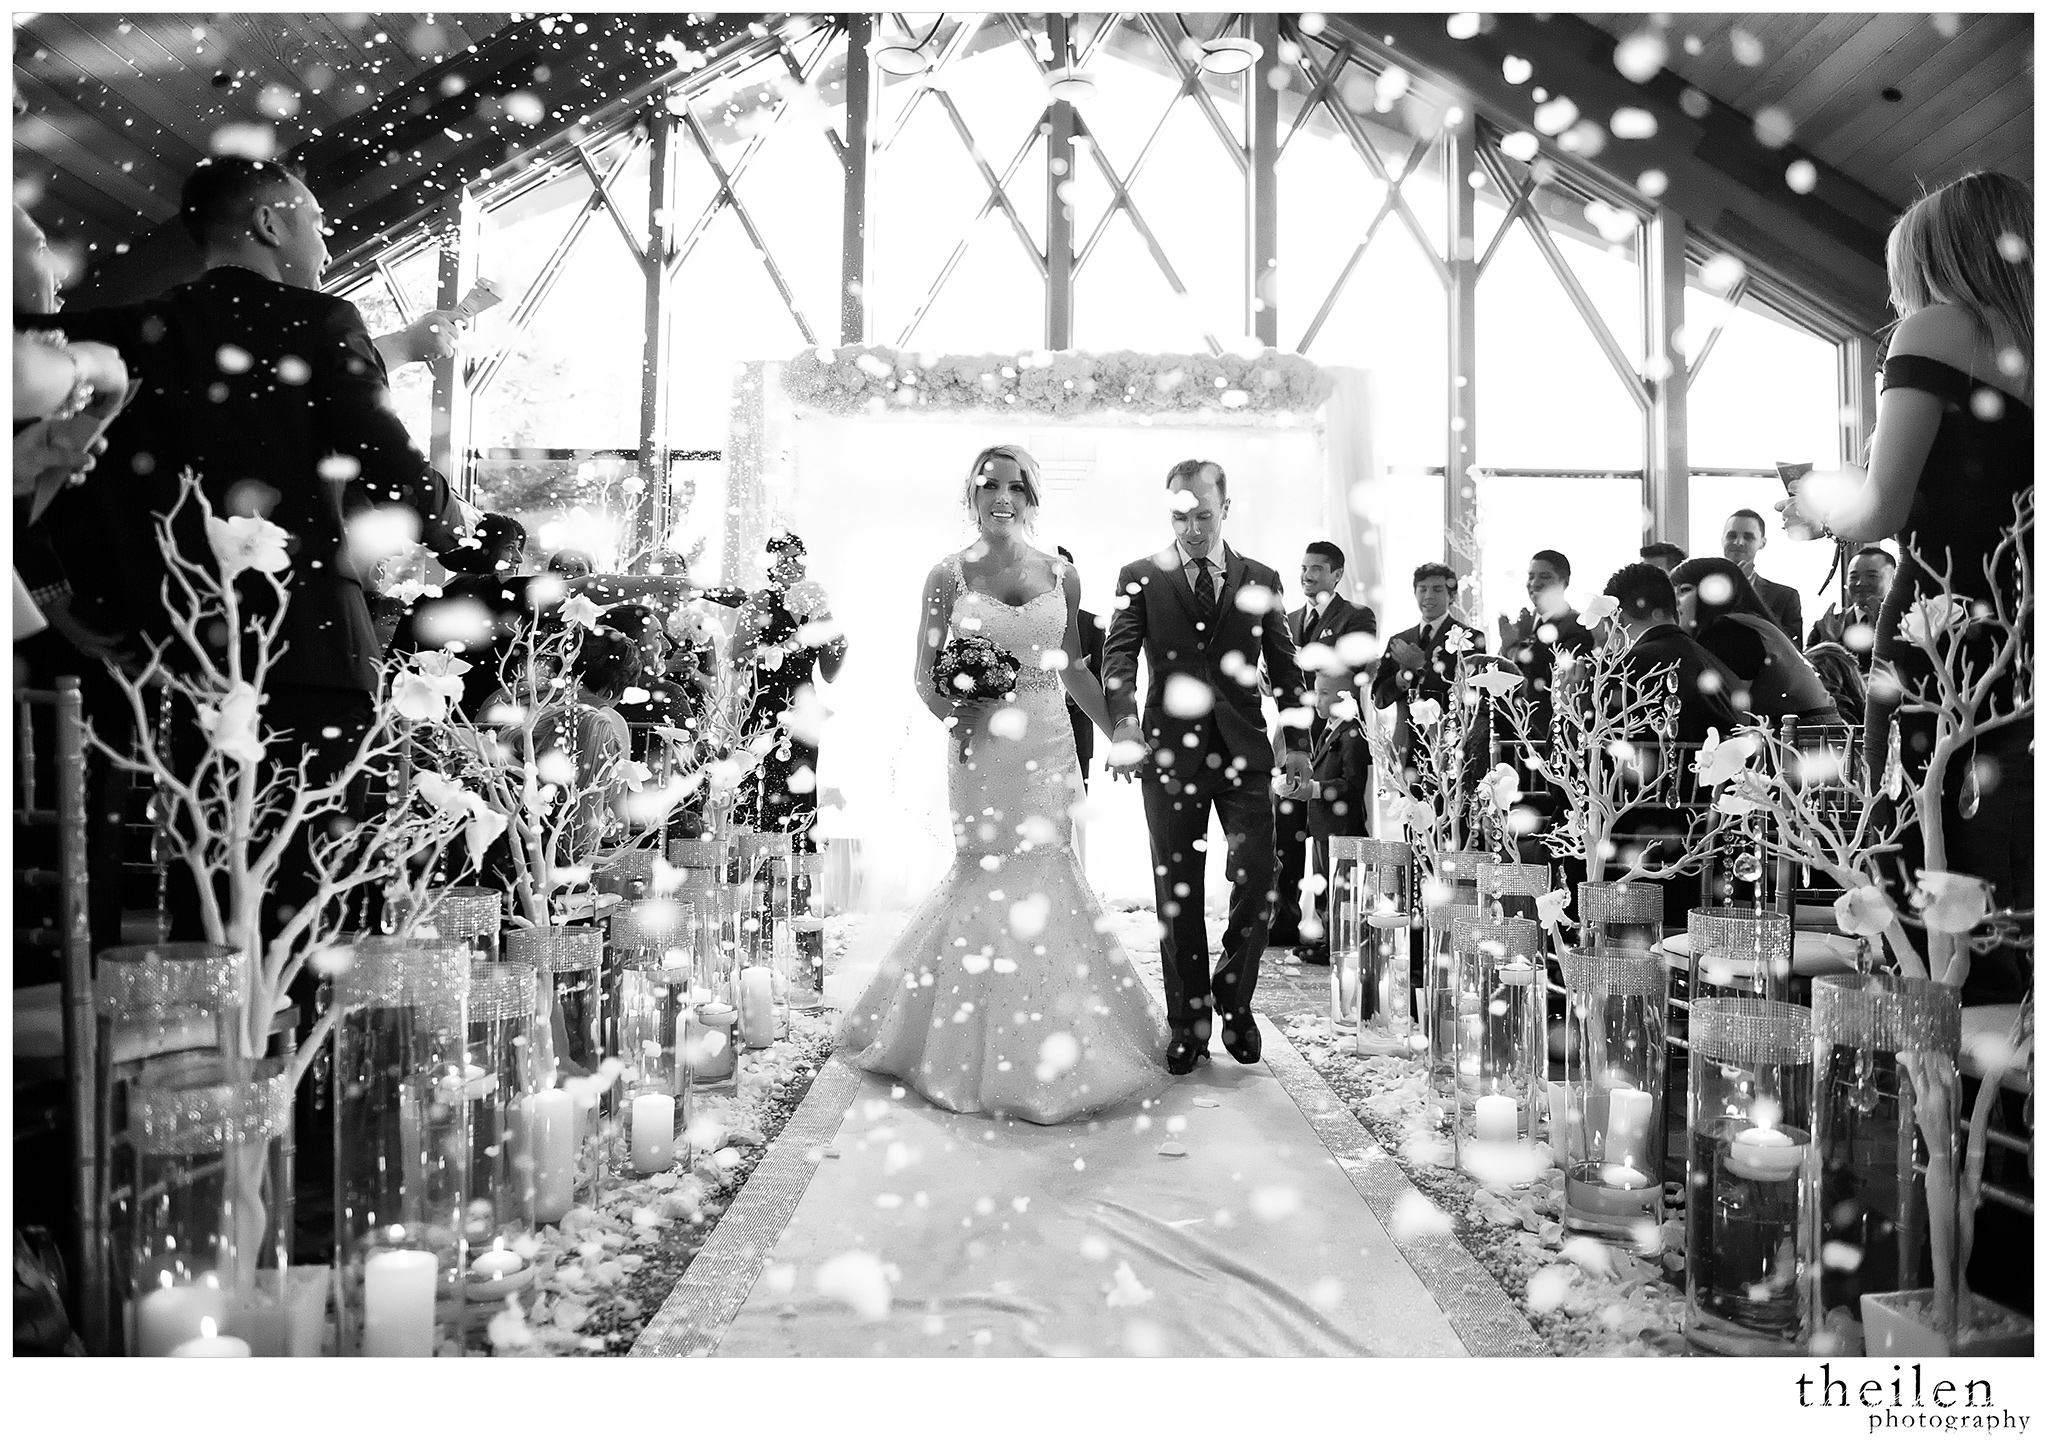 snow falling on a newlywed couple